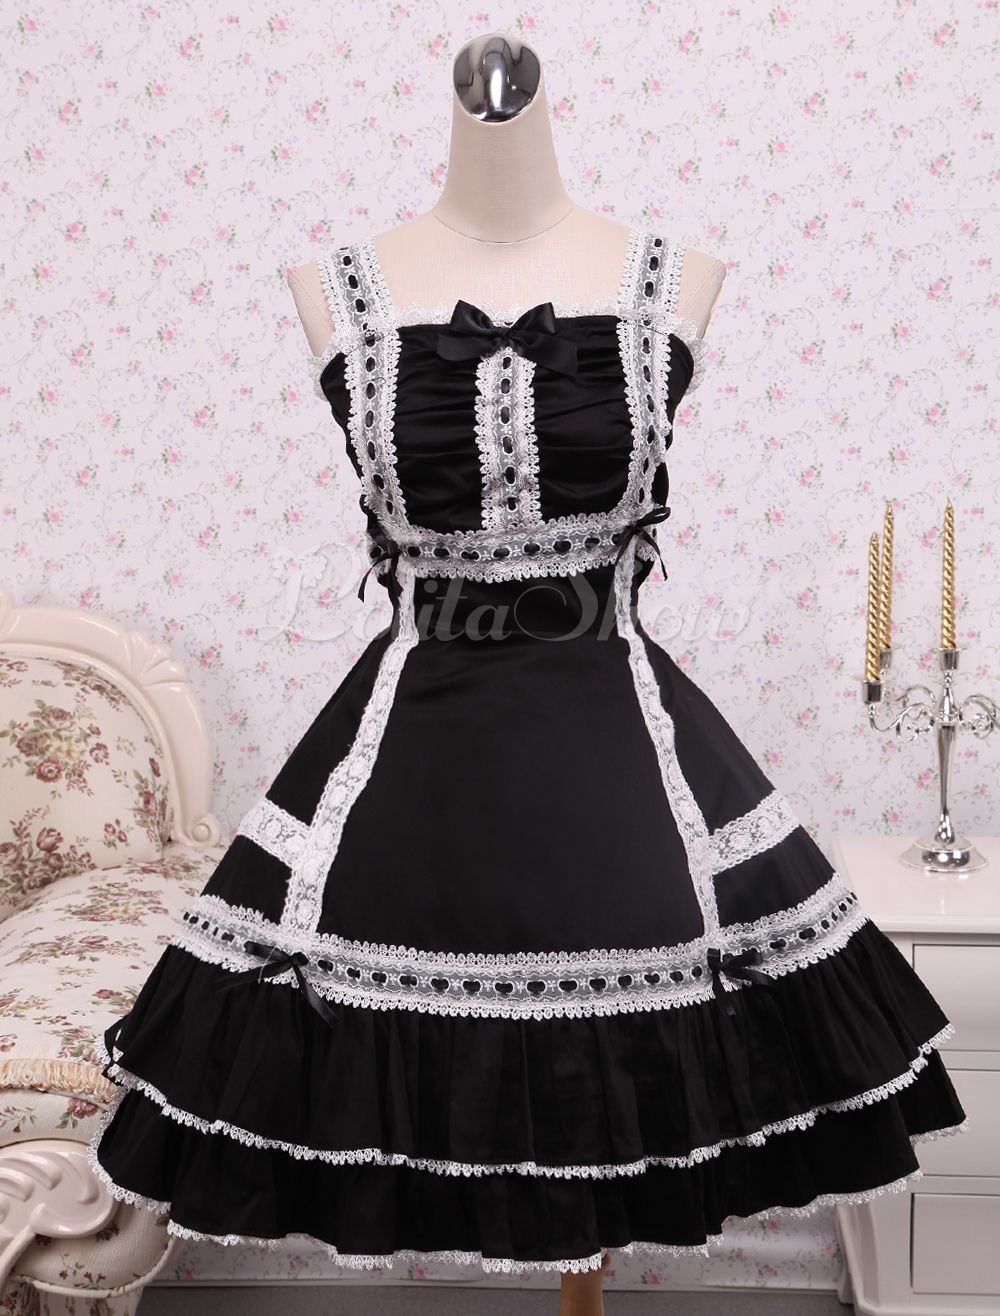 Cotton Black Lace Classic Lolita Dress - Lolitashow.com